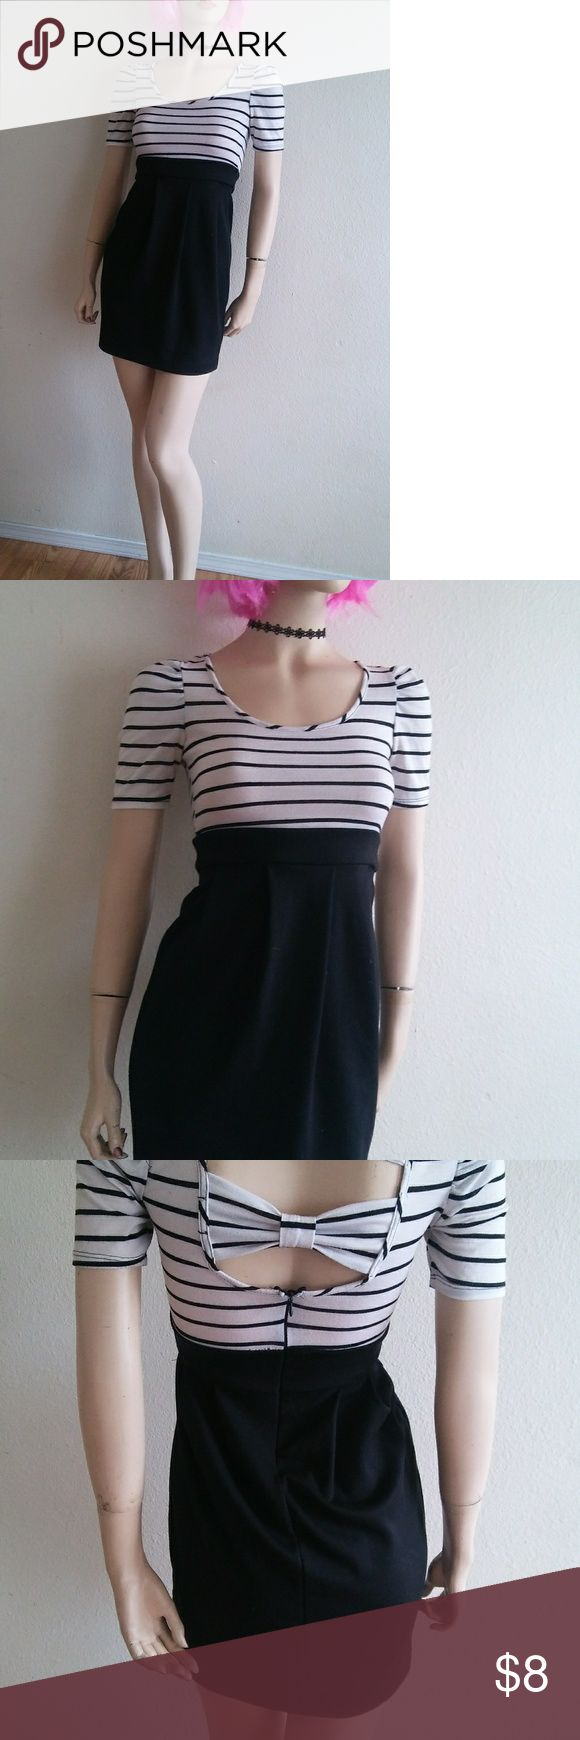 Striped bow back dress Size XS-S  *Same/next day ship!! 📦 *Bundles save money!! 💸 *Discounts on every bundle purchase!!🎉 *Free gifts with $5+ purchases!! 🎁 *Measurements upon request!!  *I recycle packages so if you would like fancy packaging let me know & I'll try to walk to the store to buy some!! ♻️ Charlotte Russe Dresses Mini